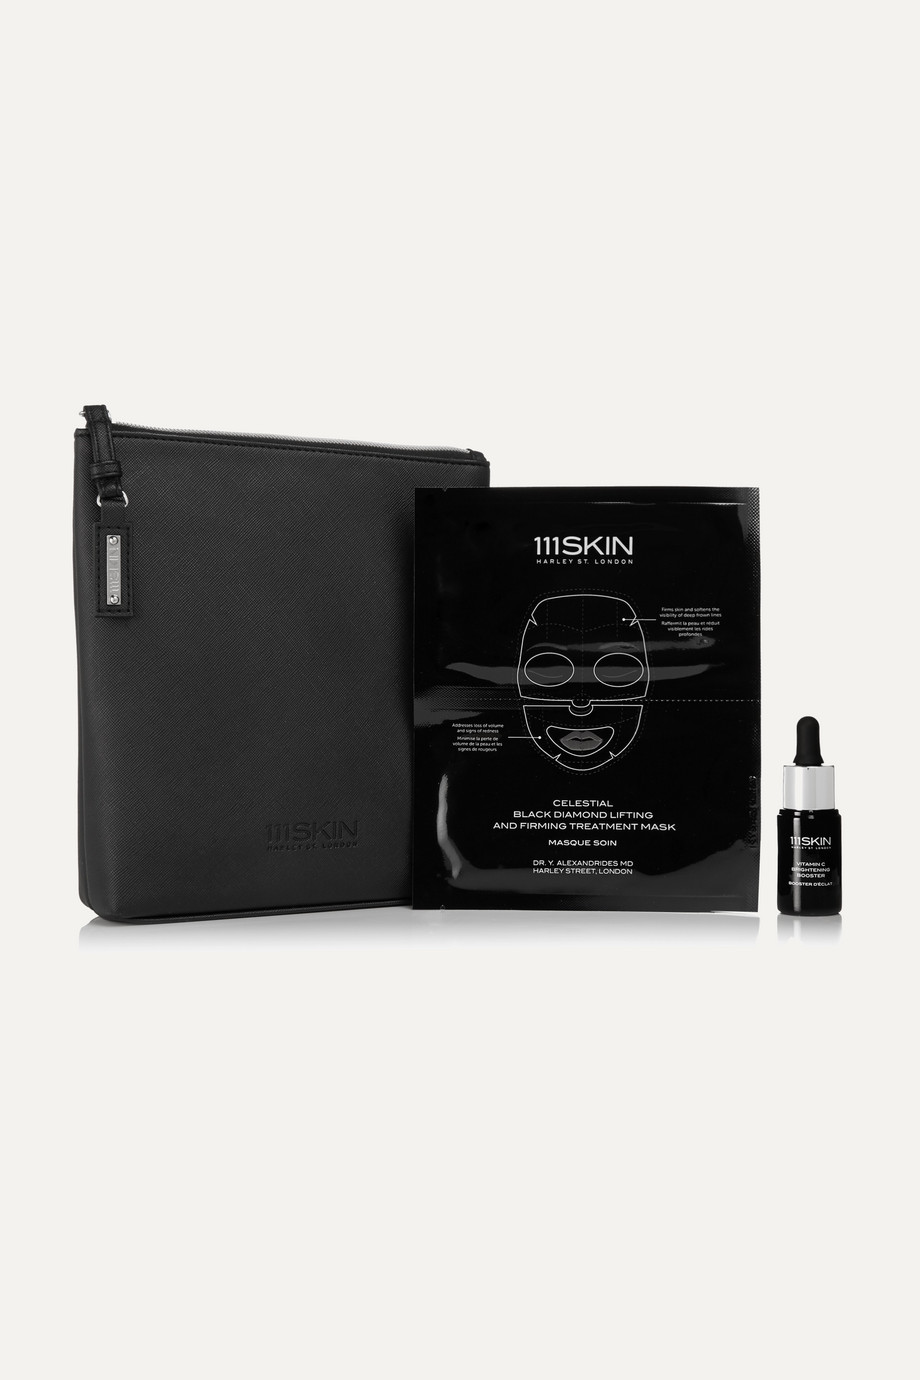 111SKIN The Intensive Kit